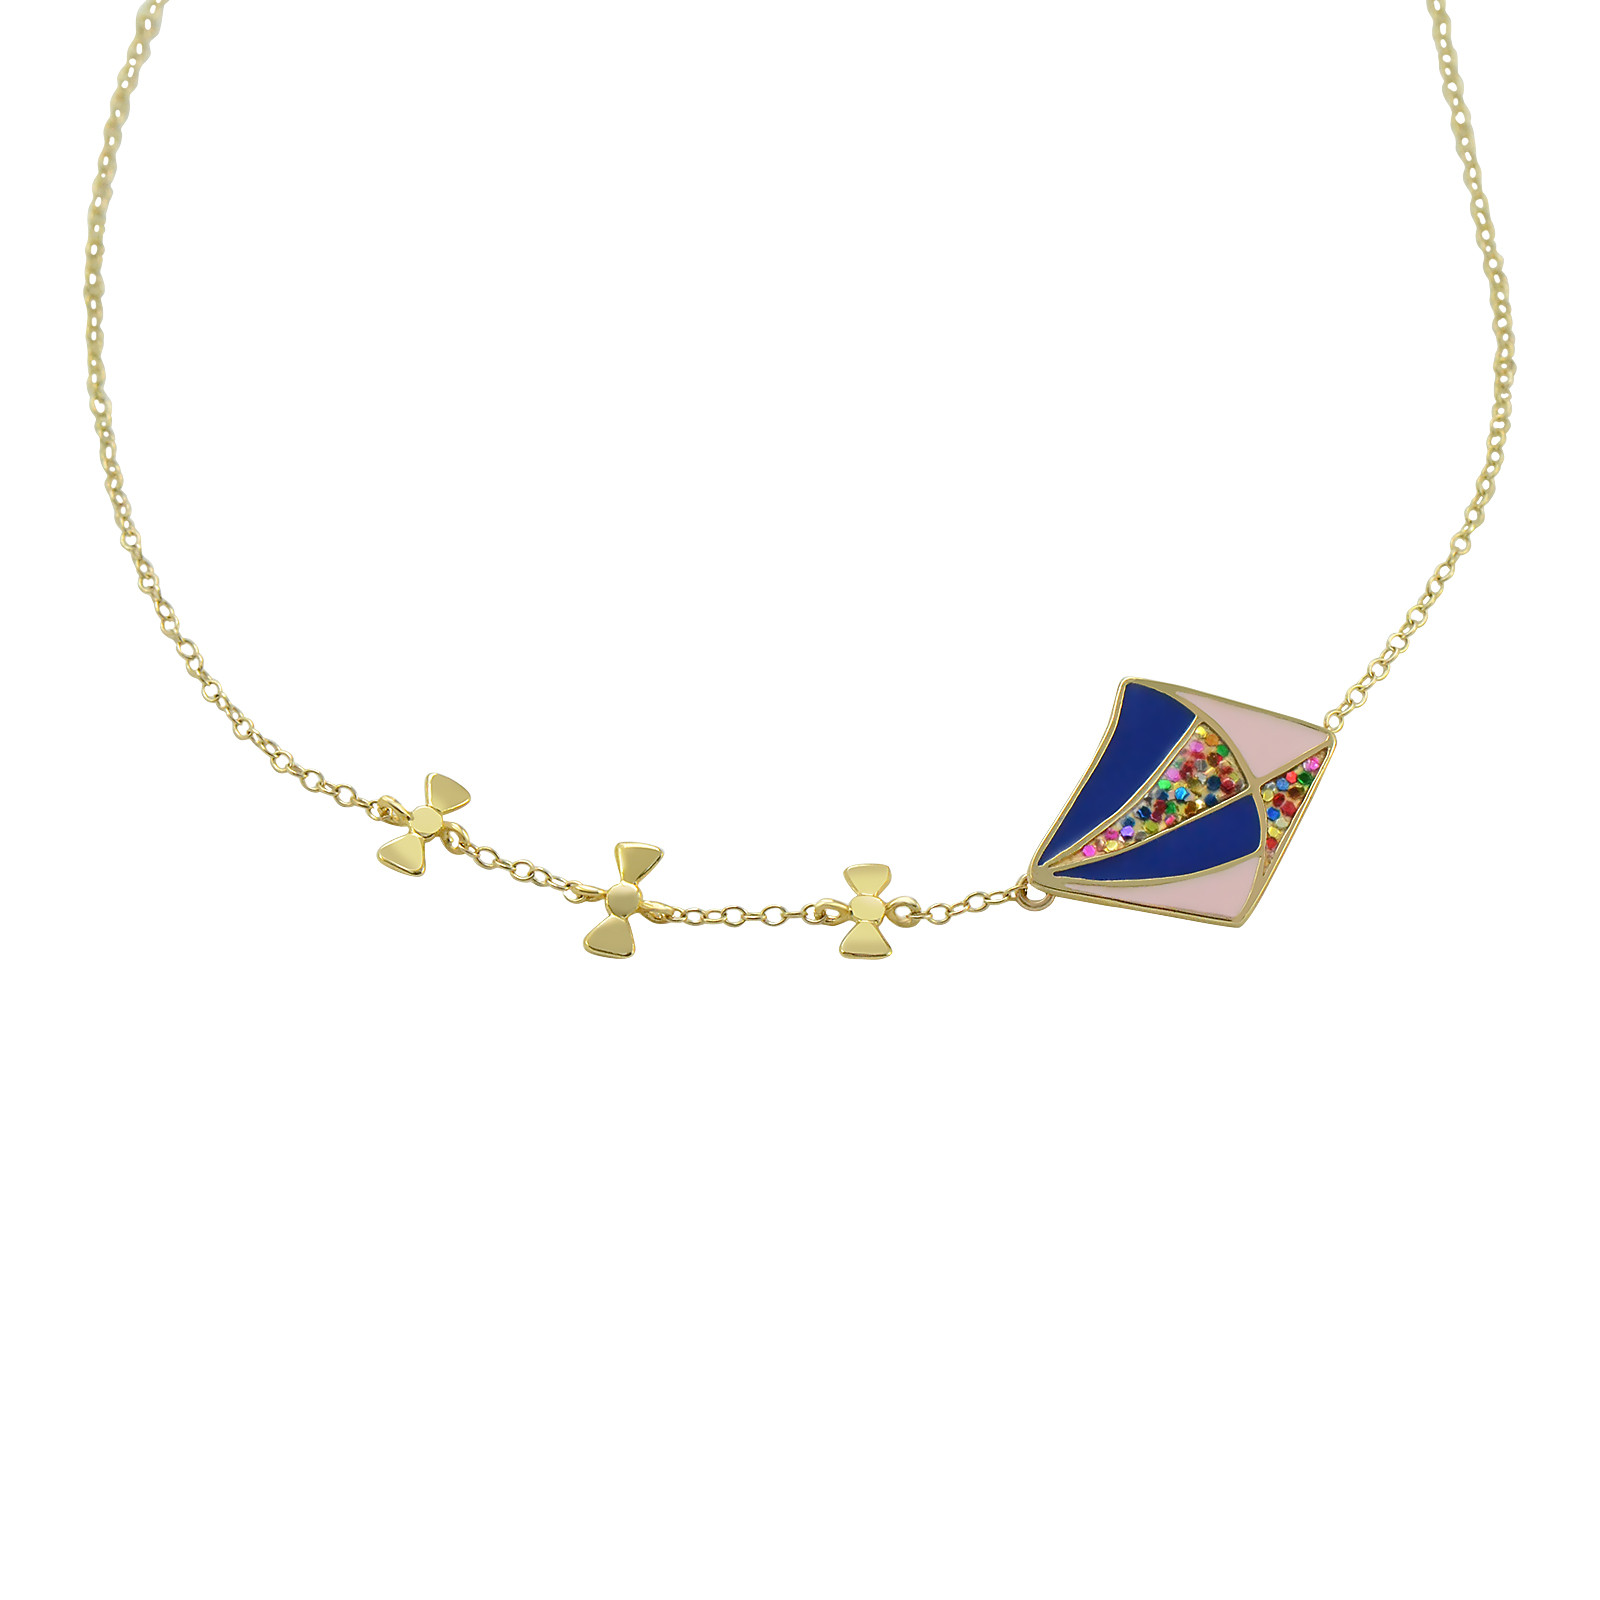 Flutter into summer with this high-spirited Kite necklace that calls back to mind the merriment of childhood memories. Entirely handcrafted, this colorful necklace is enameled with joyful color combinations. Never let go of your playful side!